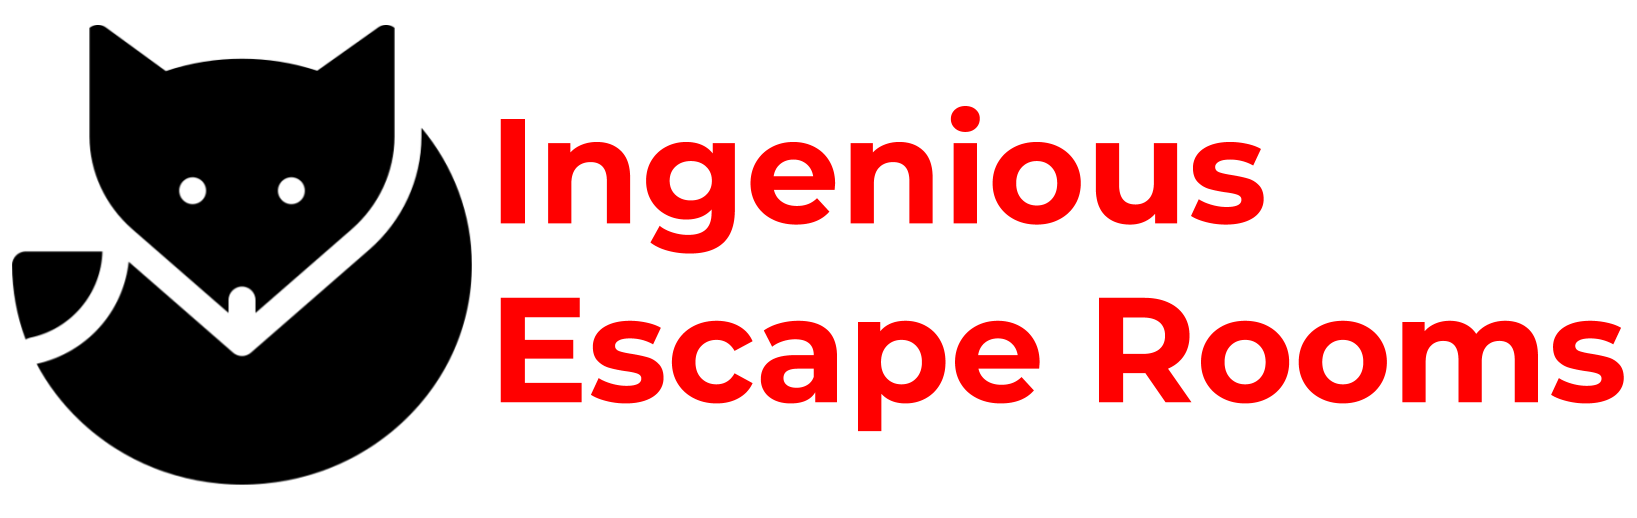 Ingenious Escape Rooms |   cropped-untitled-drawing-2019-11-10t162341.674.jpg